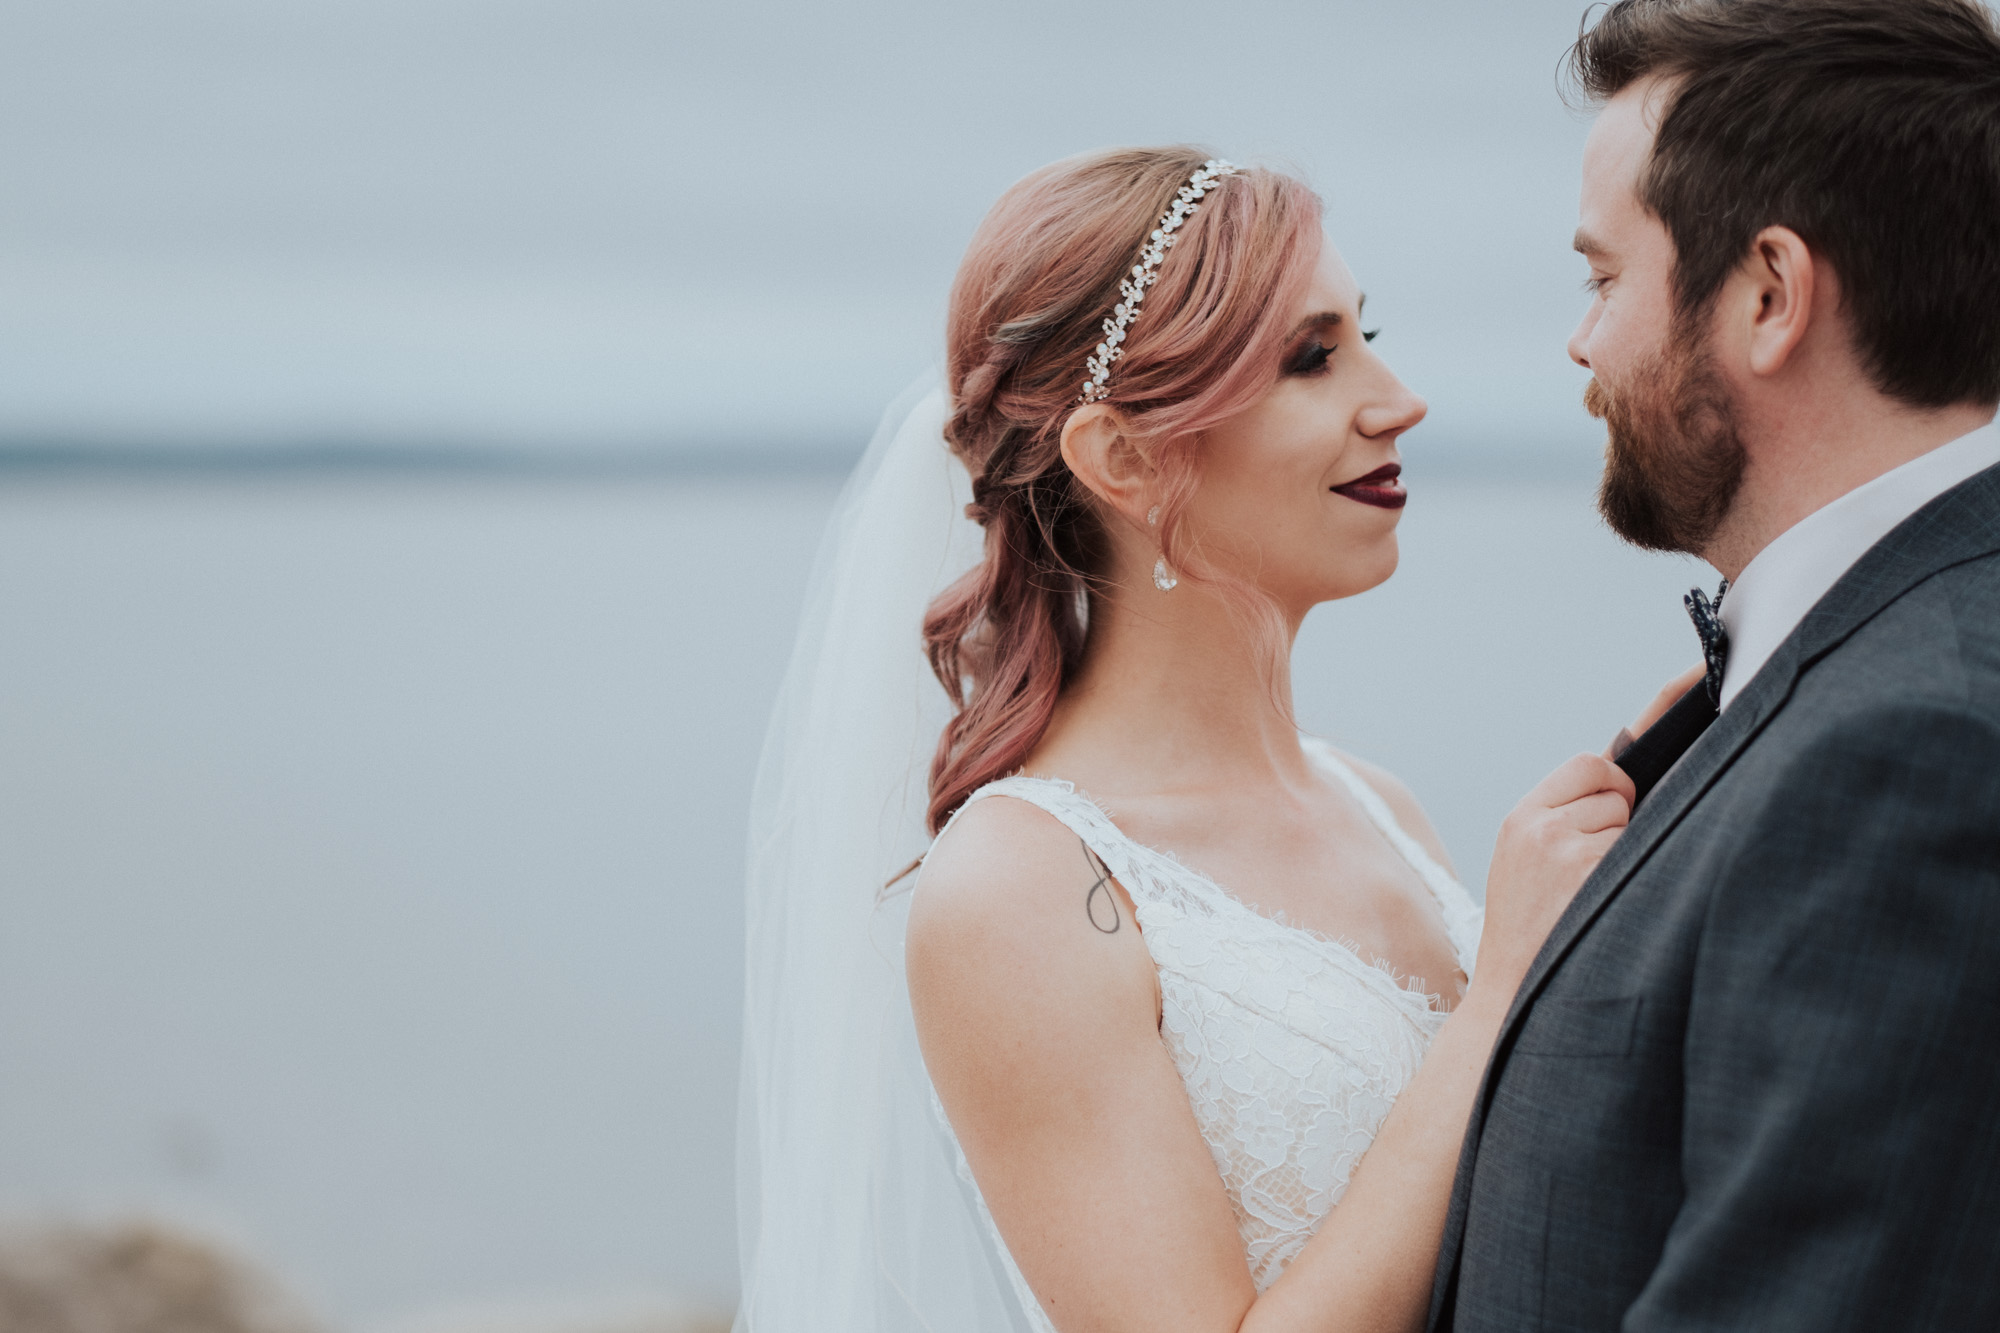 Wild Rosebuds | Shooting a wedding with the Fujifilm X-T20 with the 56mm F1.2 lens